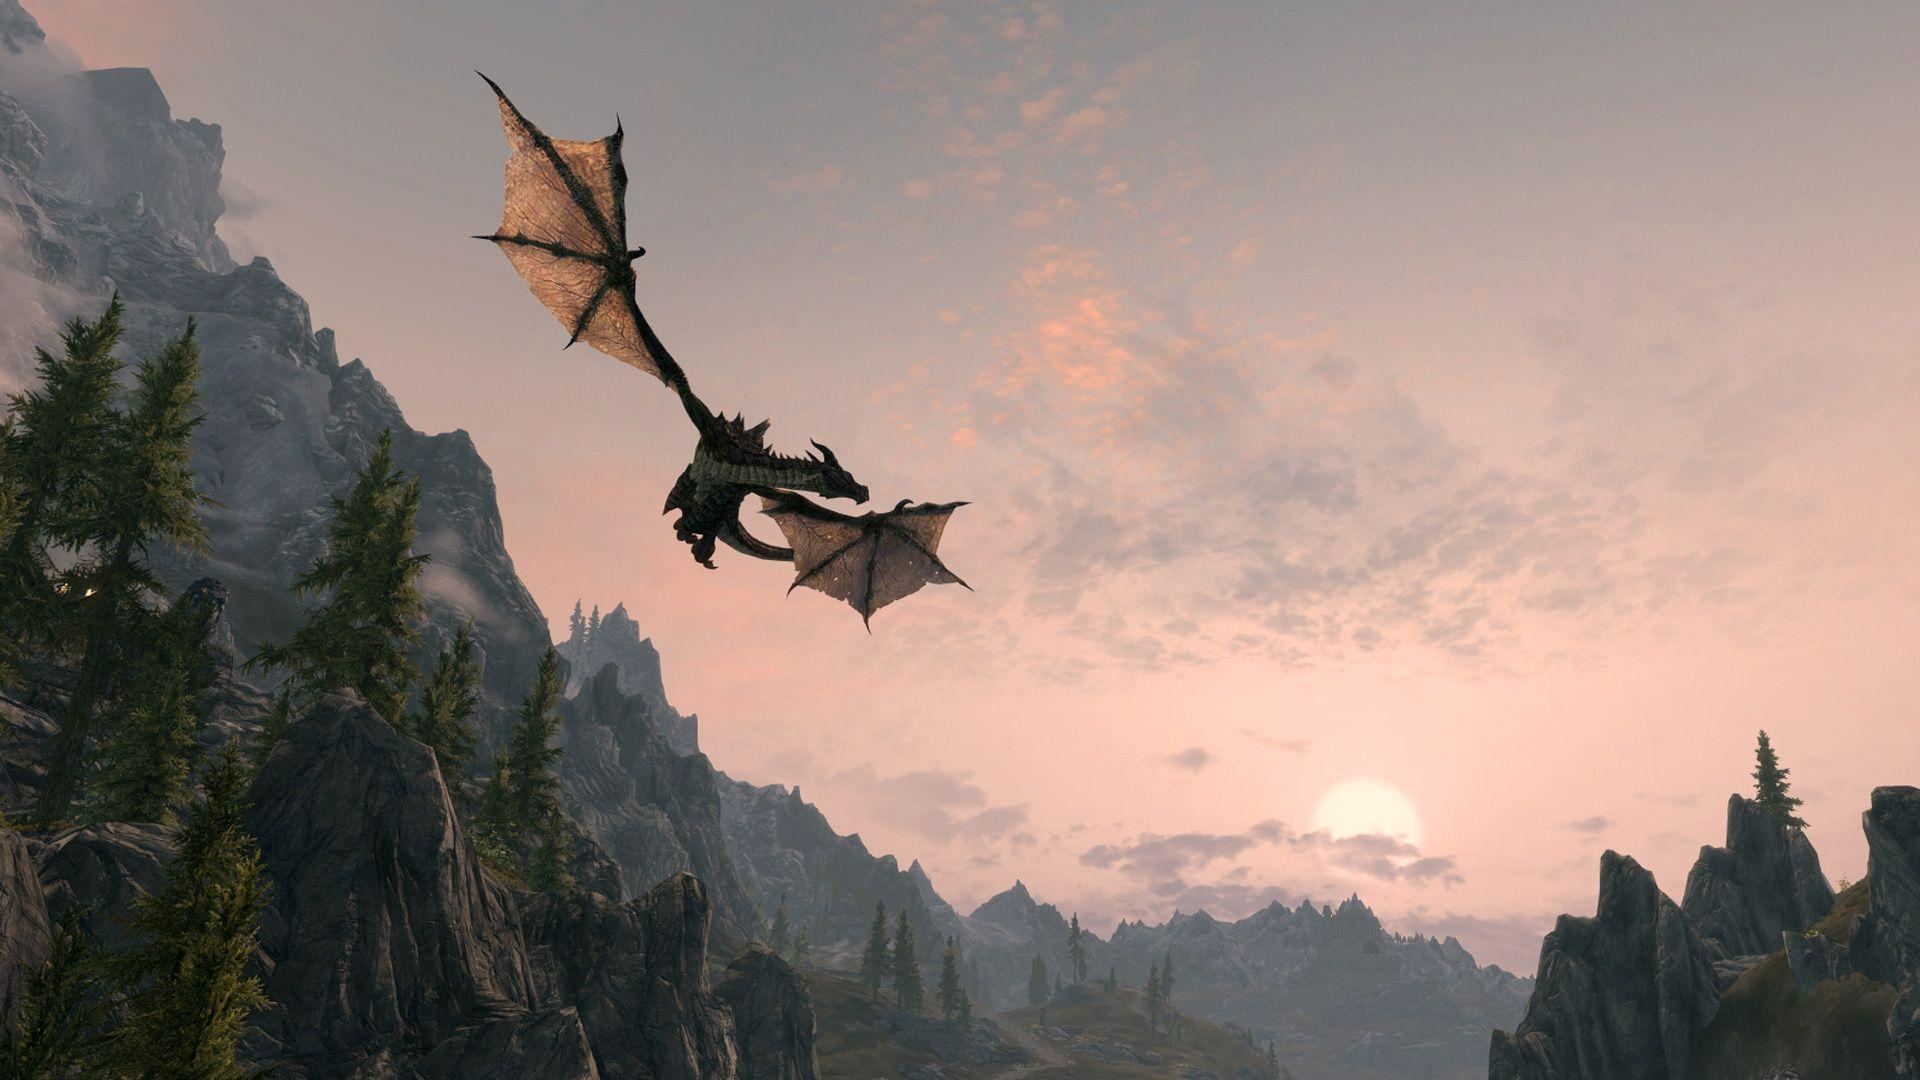 skyrim hd wallpapers 1366x768 - photo #37